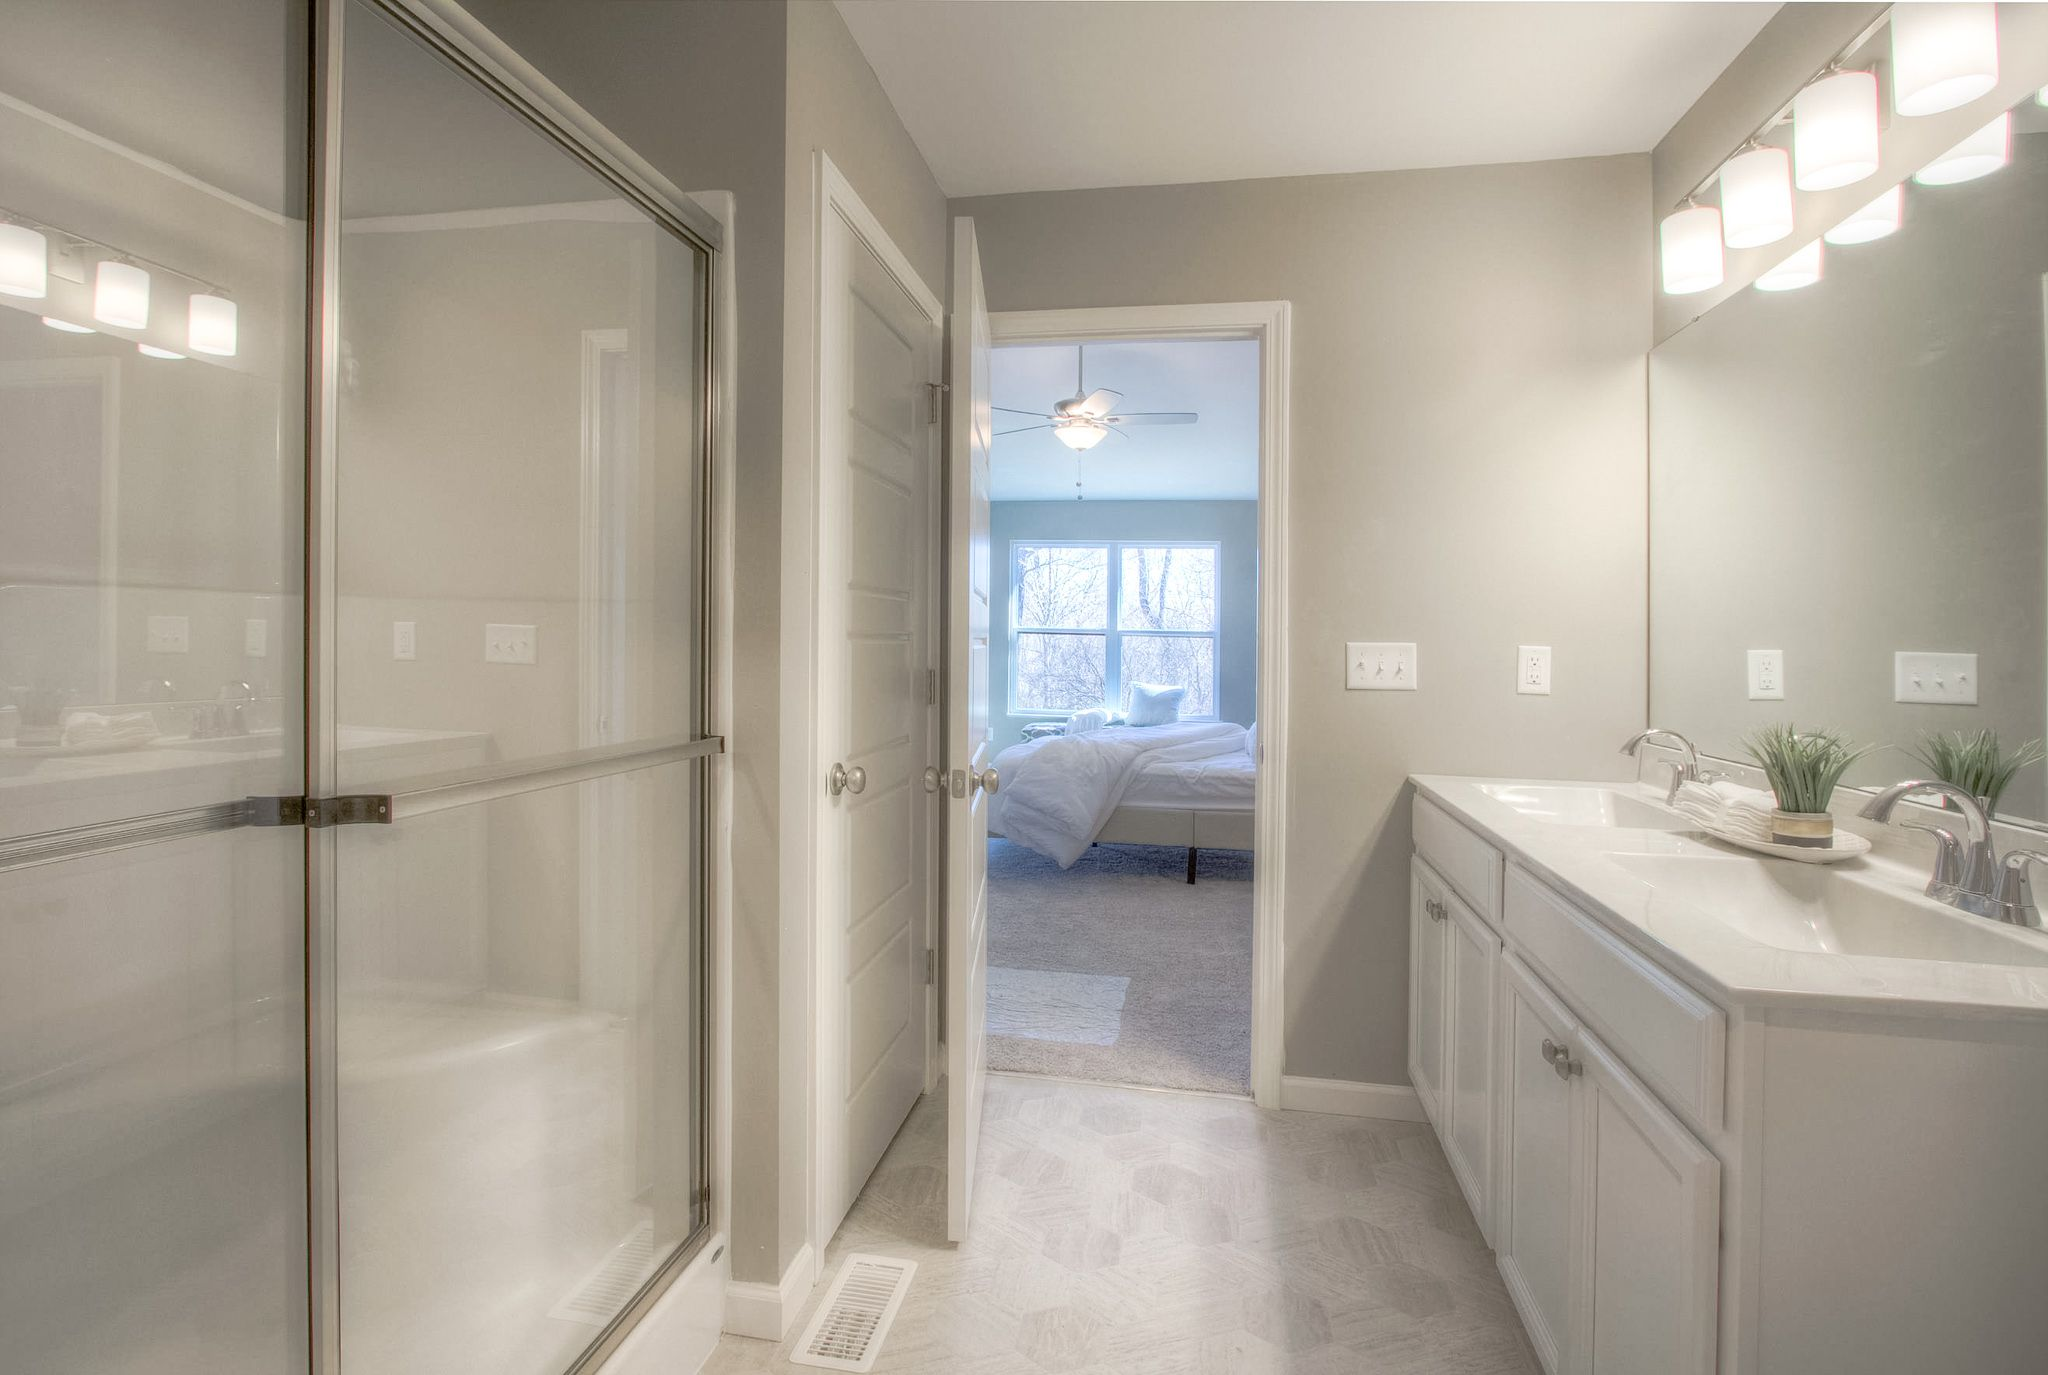 Bathroom featured in the Houston B By C.A. Jones, Inc.  in St. Louis, IL